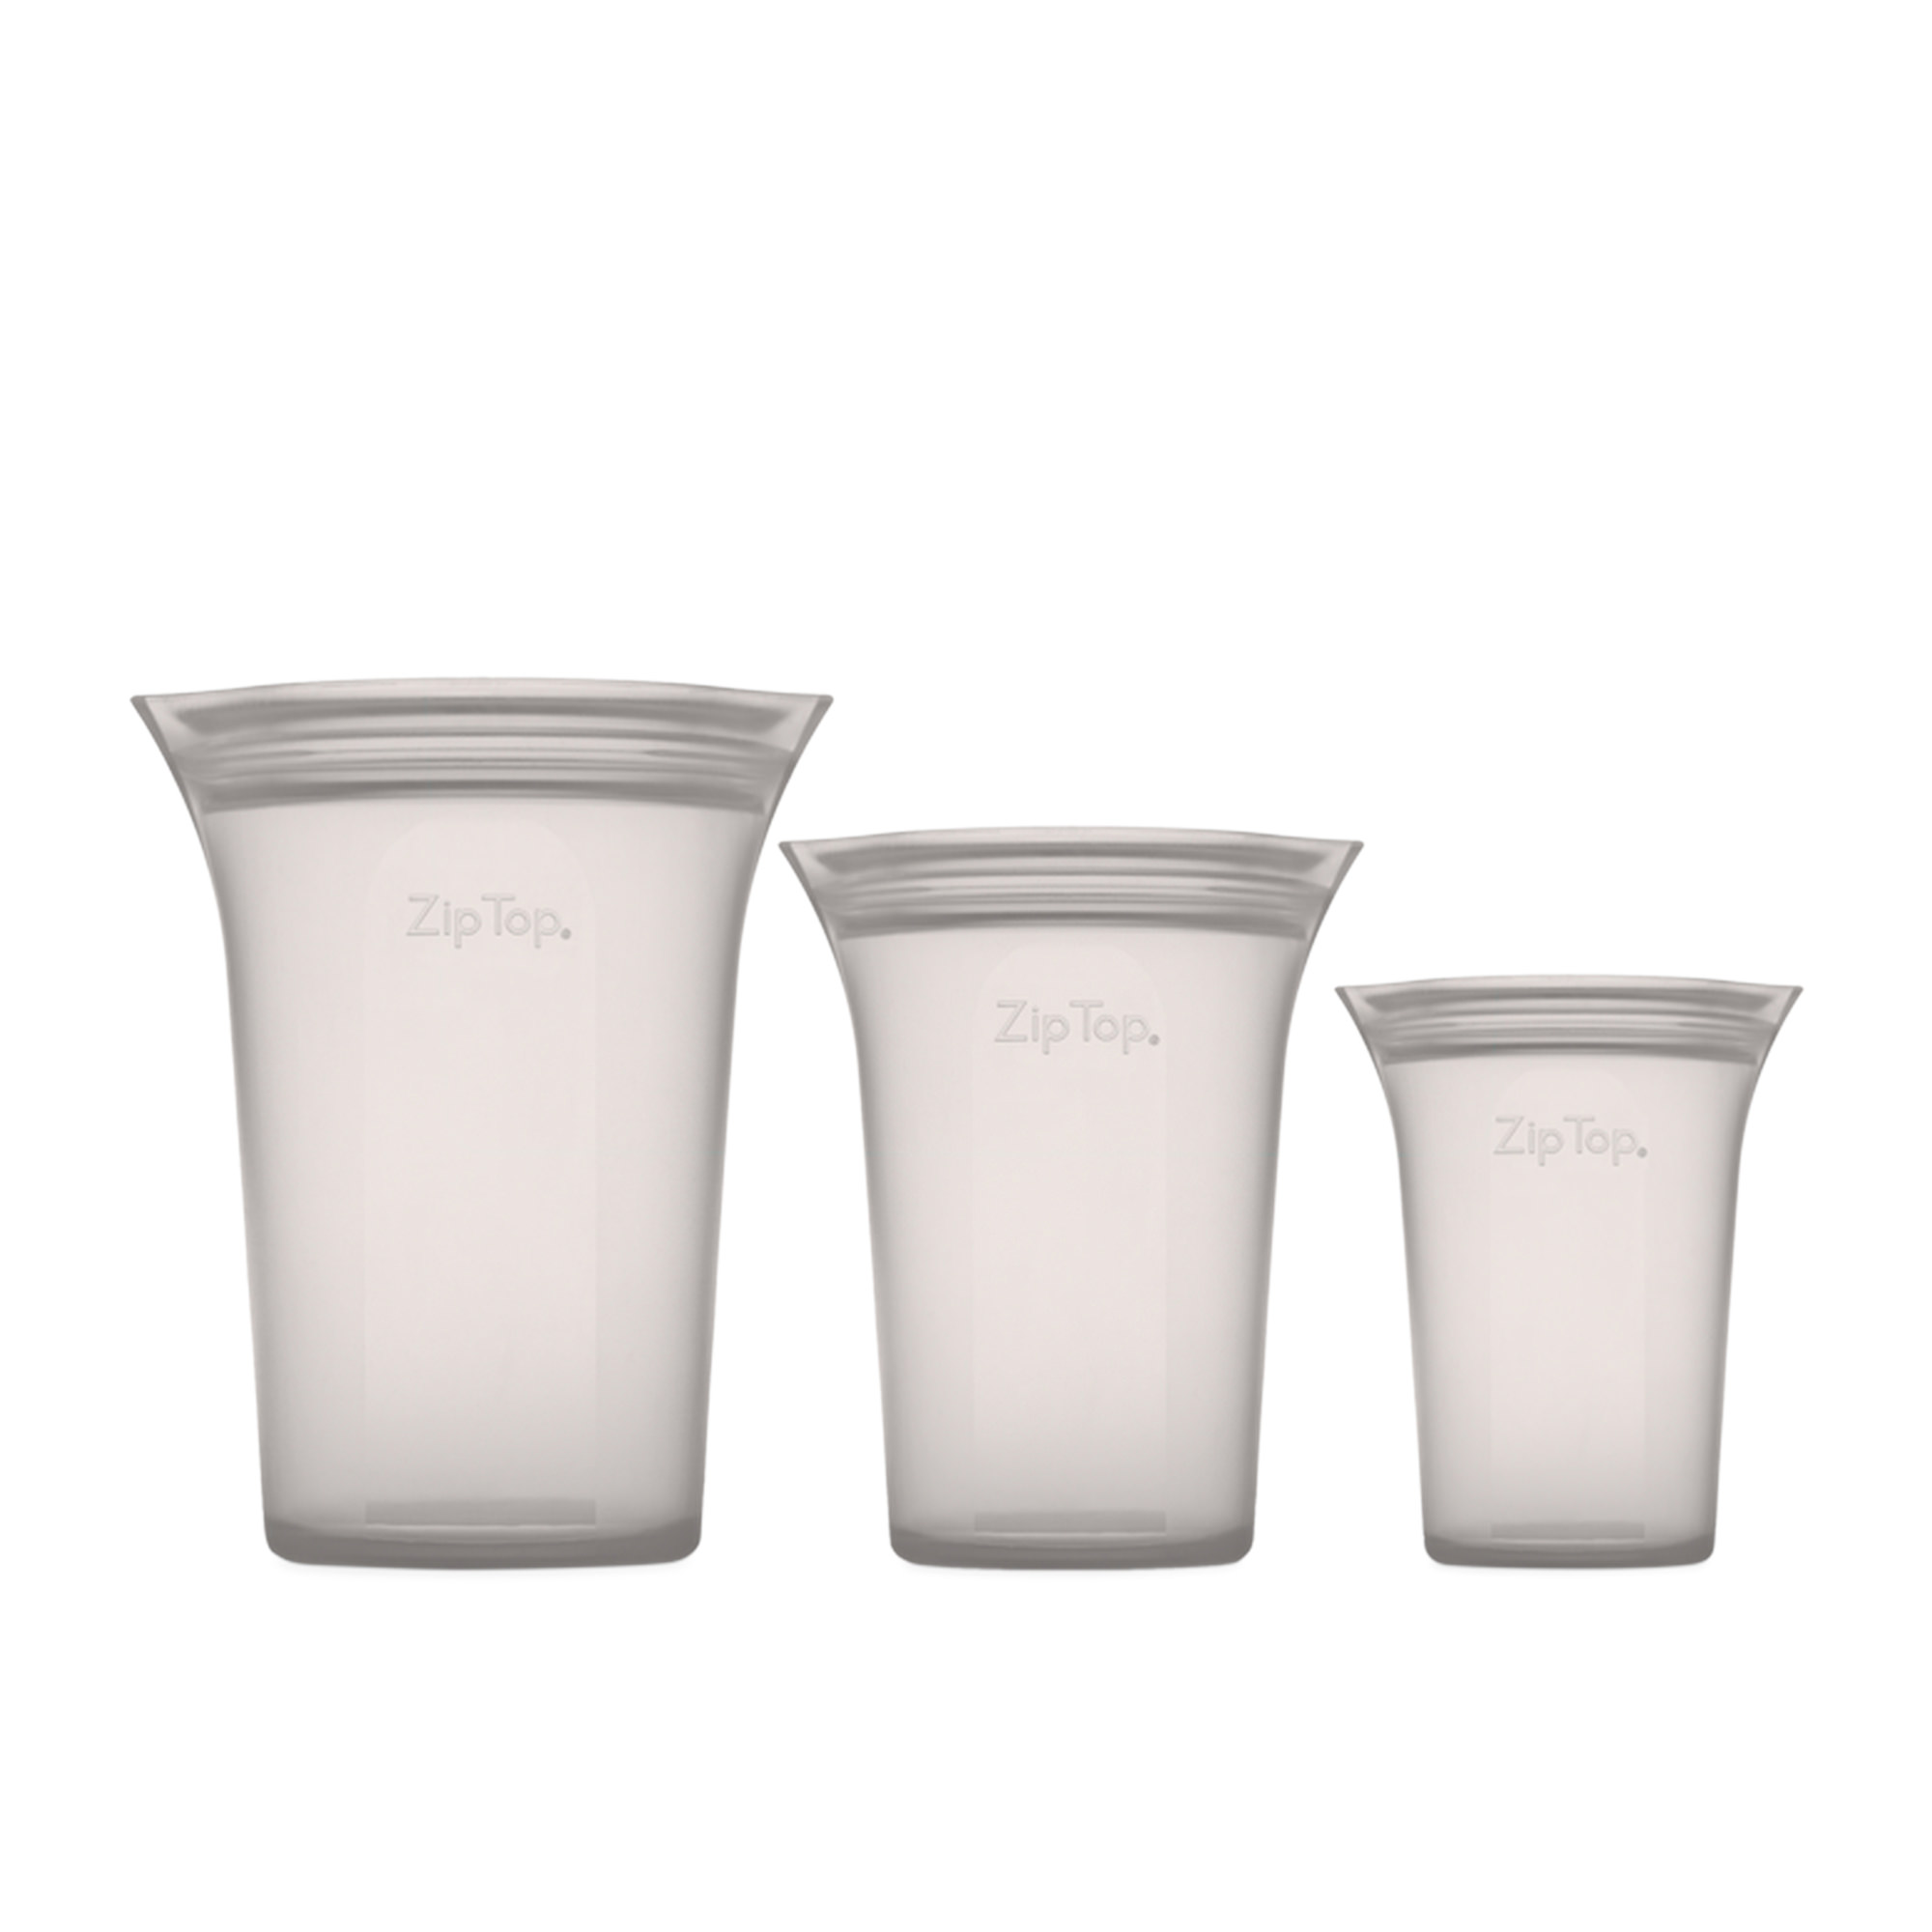 Zip Top 3pc Platinum Silicone Cup Container Set Grey